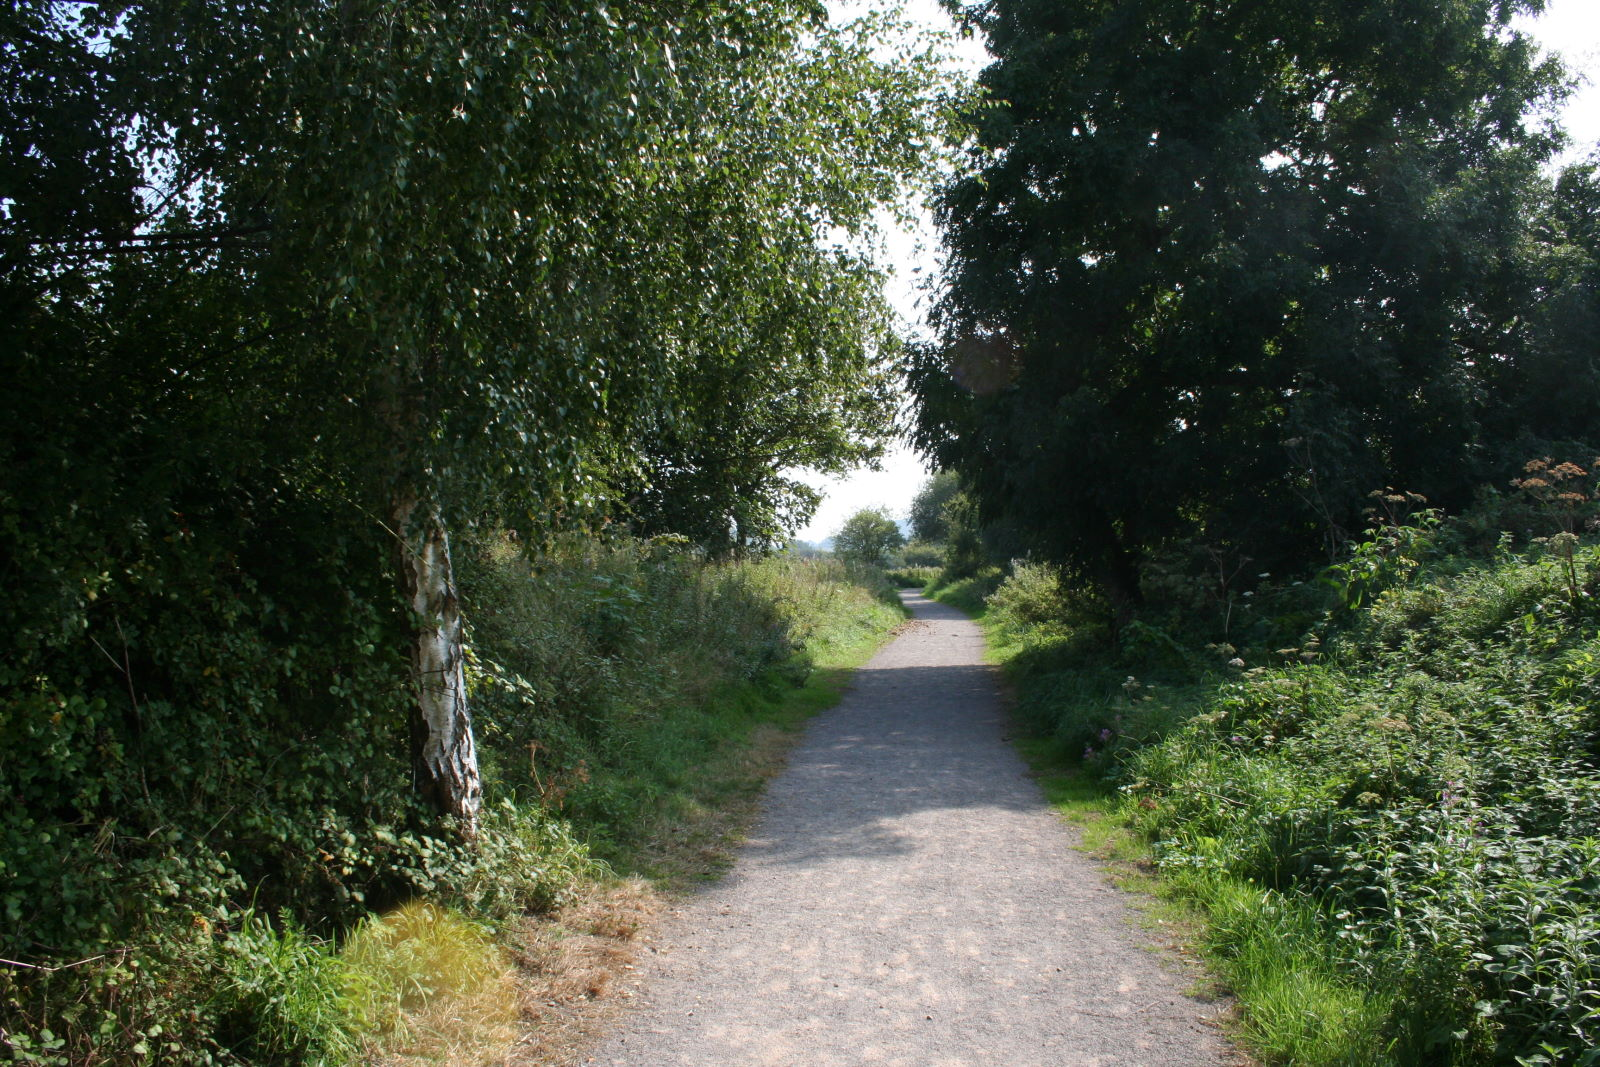 The Dorset Trailway, which follows the route of the S&D